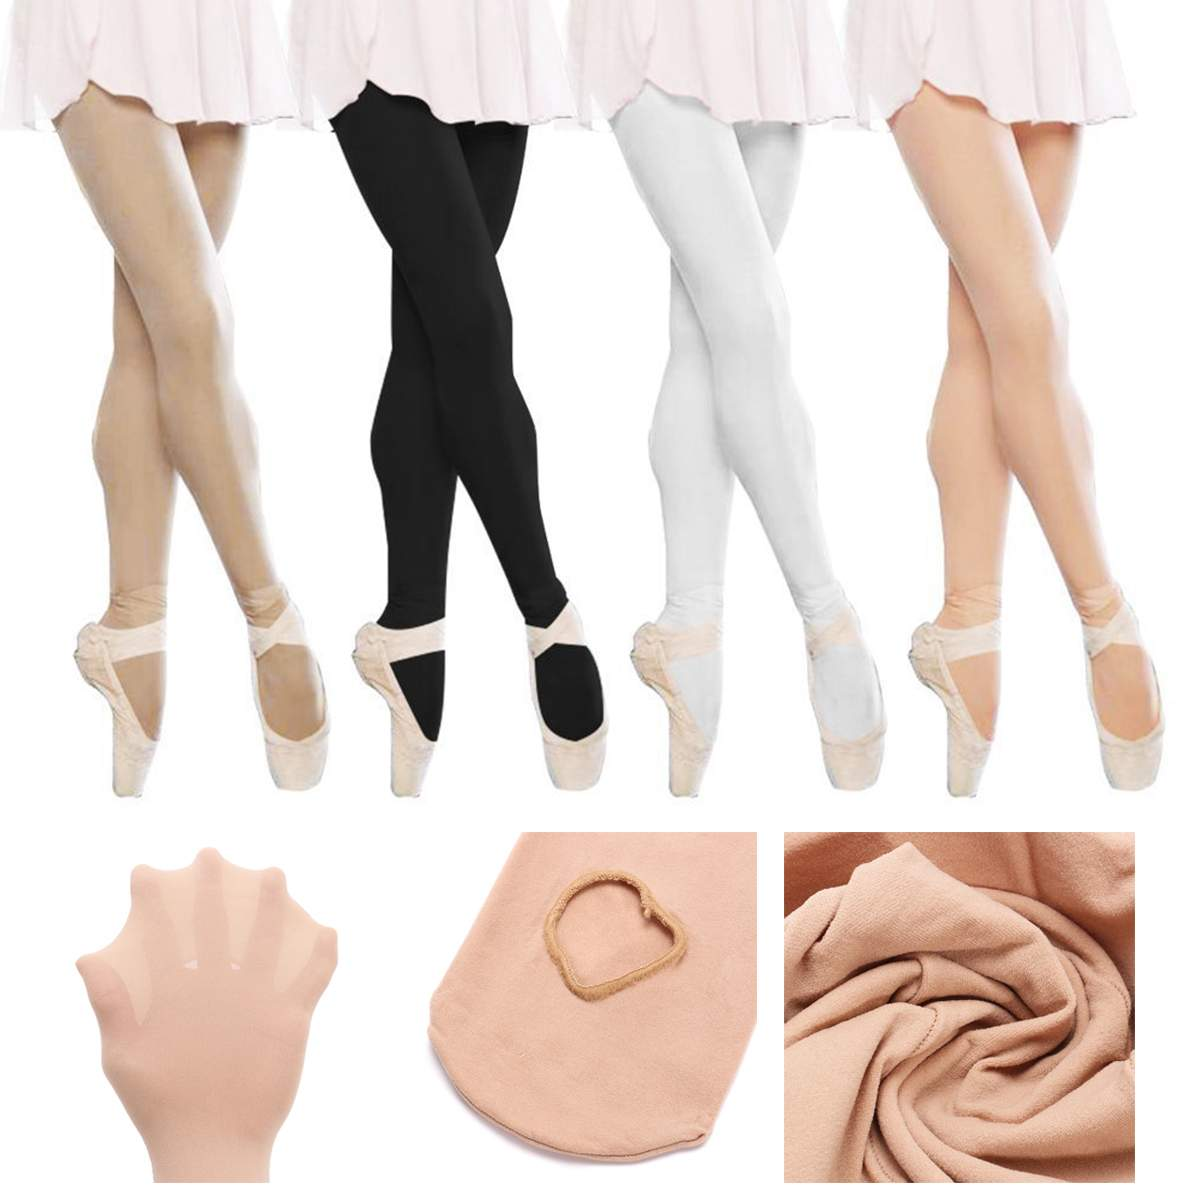 Children Girls Convertible Tights Ballet Dance Stocking Socks Ballet Pantyhose Gymnastics Leotards Kids Ladies Tap Dance Tights